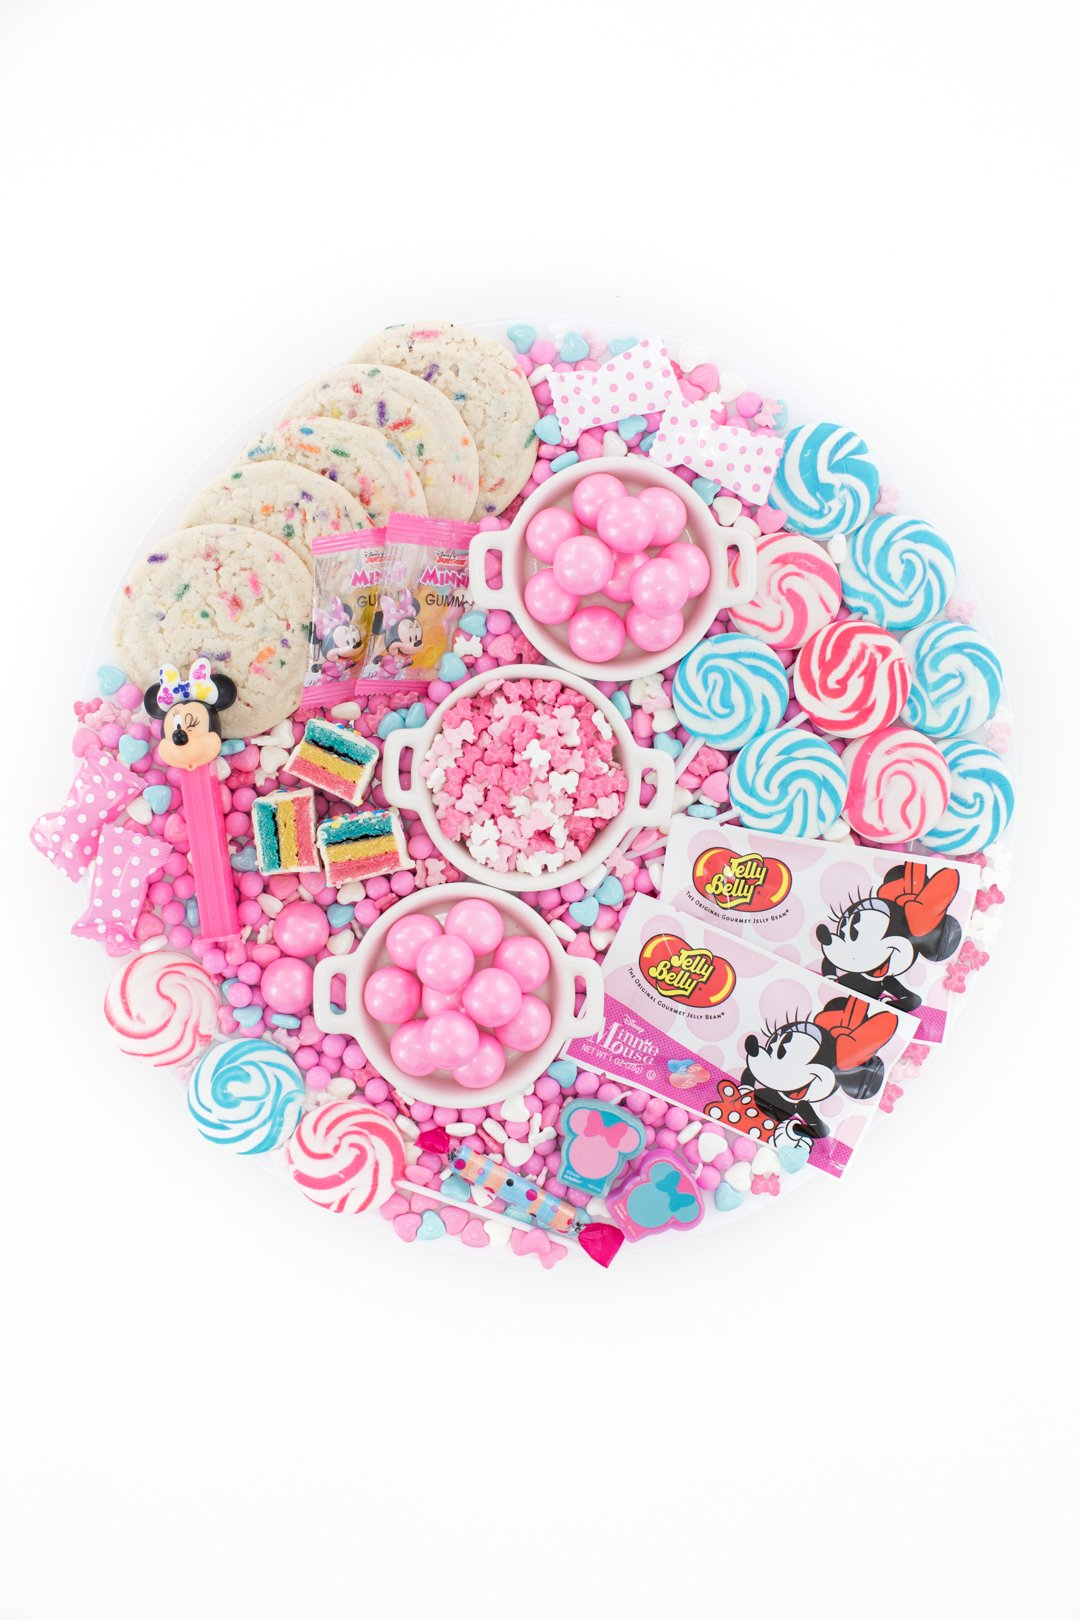 disney minnie mouse candy charcuterie board with pink and blue candies